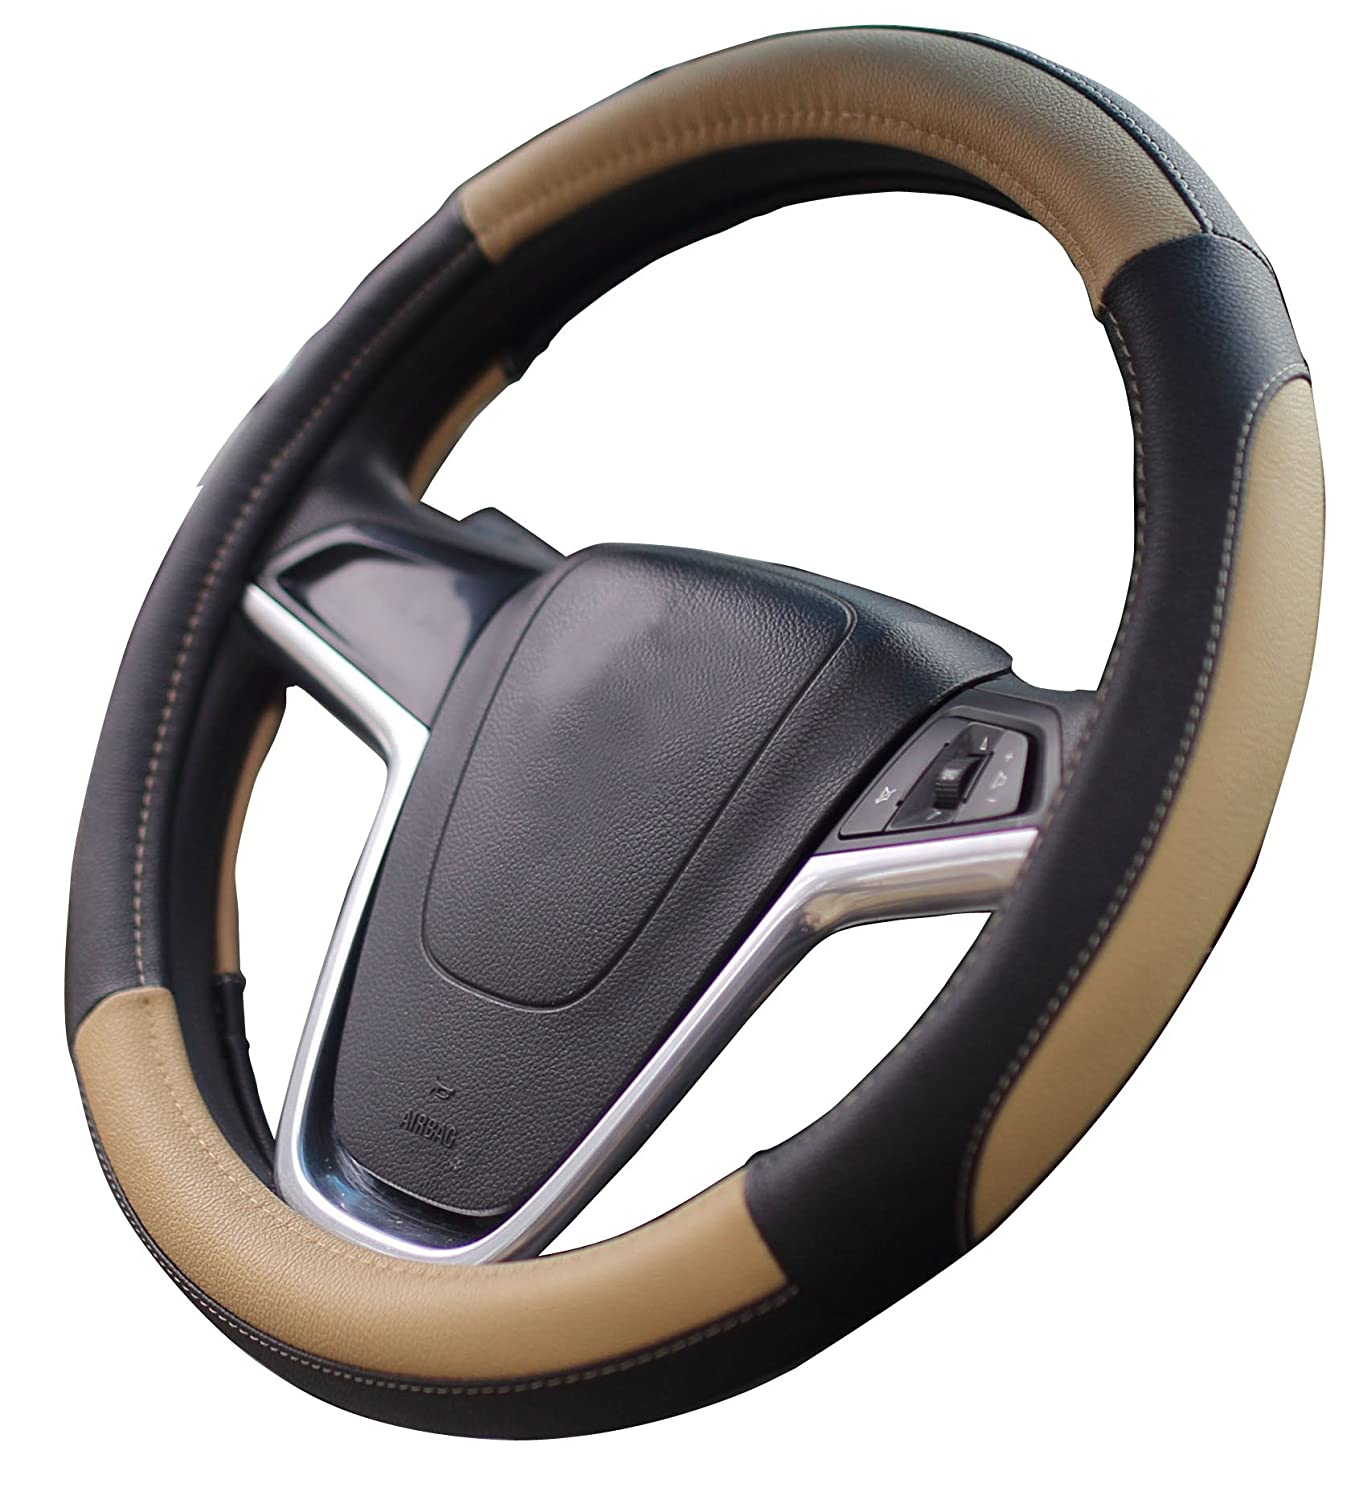 Black Red Mayco Bell Car Steering Wheel Cover 15 inch Comfort Durability Safety